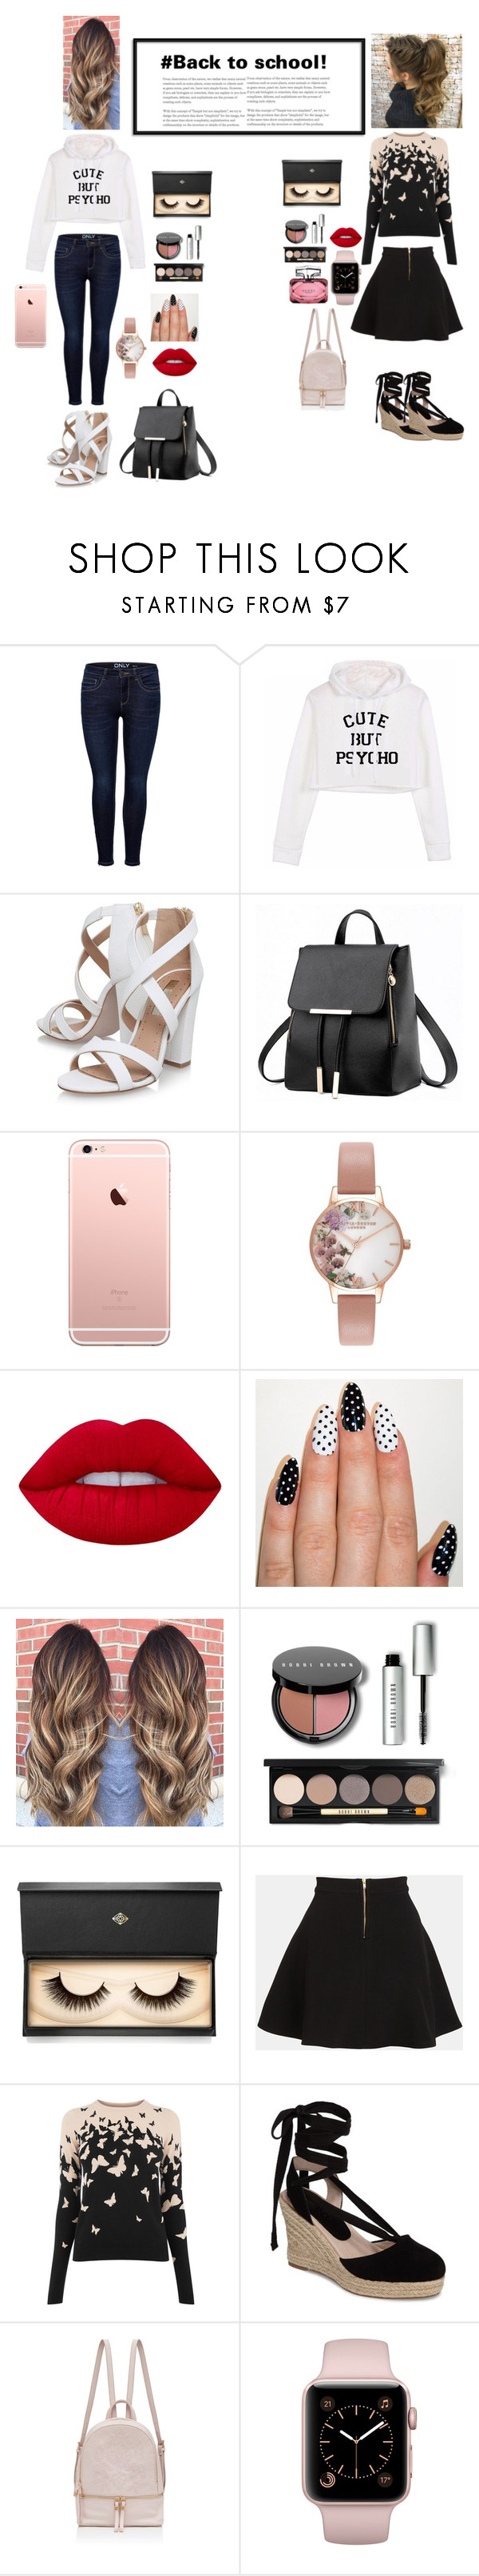 """""""#Back to school!"""" by bigdreamer02 ❤ liked on Polyvore featuring Miss KG, Olivia Burton, Lime Crime, Bobbi Brown Cosmetics, Lash Star Beauty, Parker, Topshop and Gucci"""